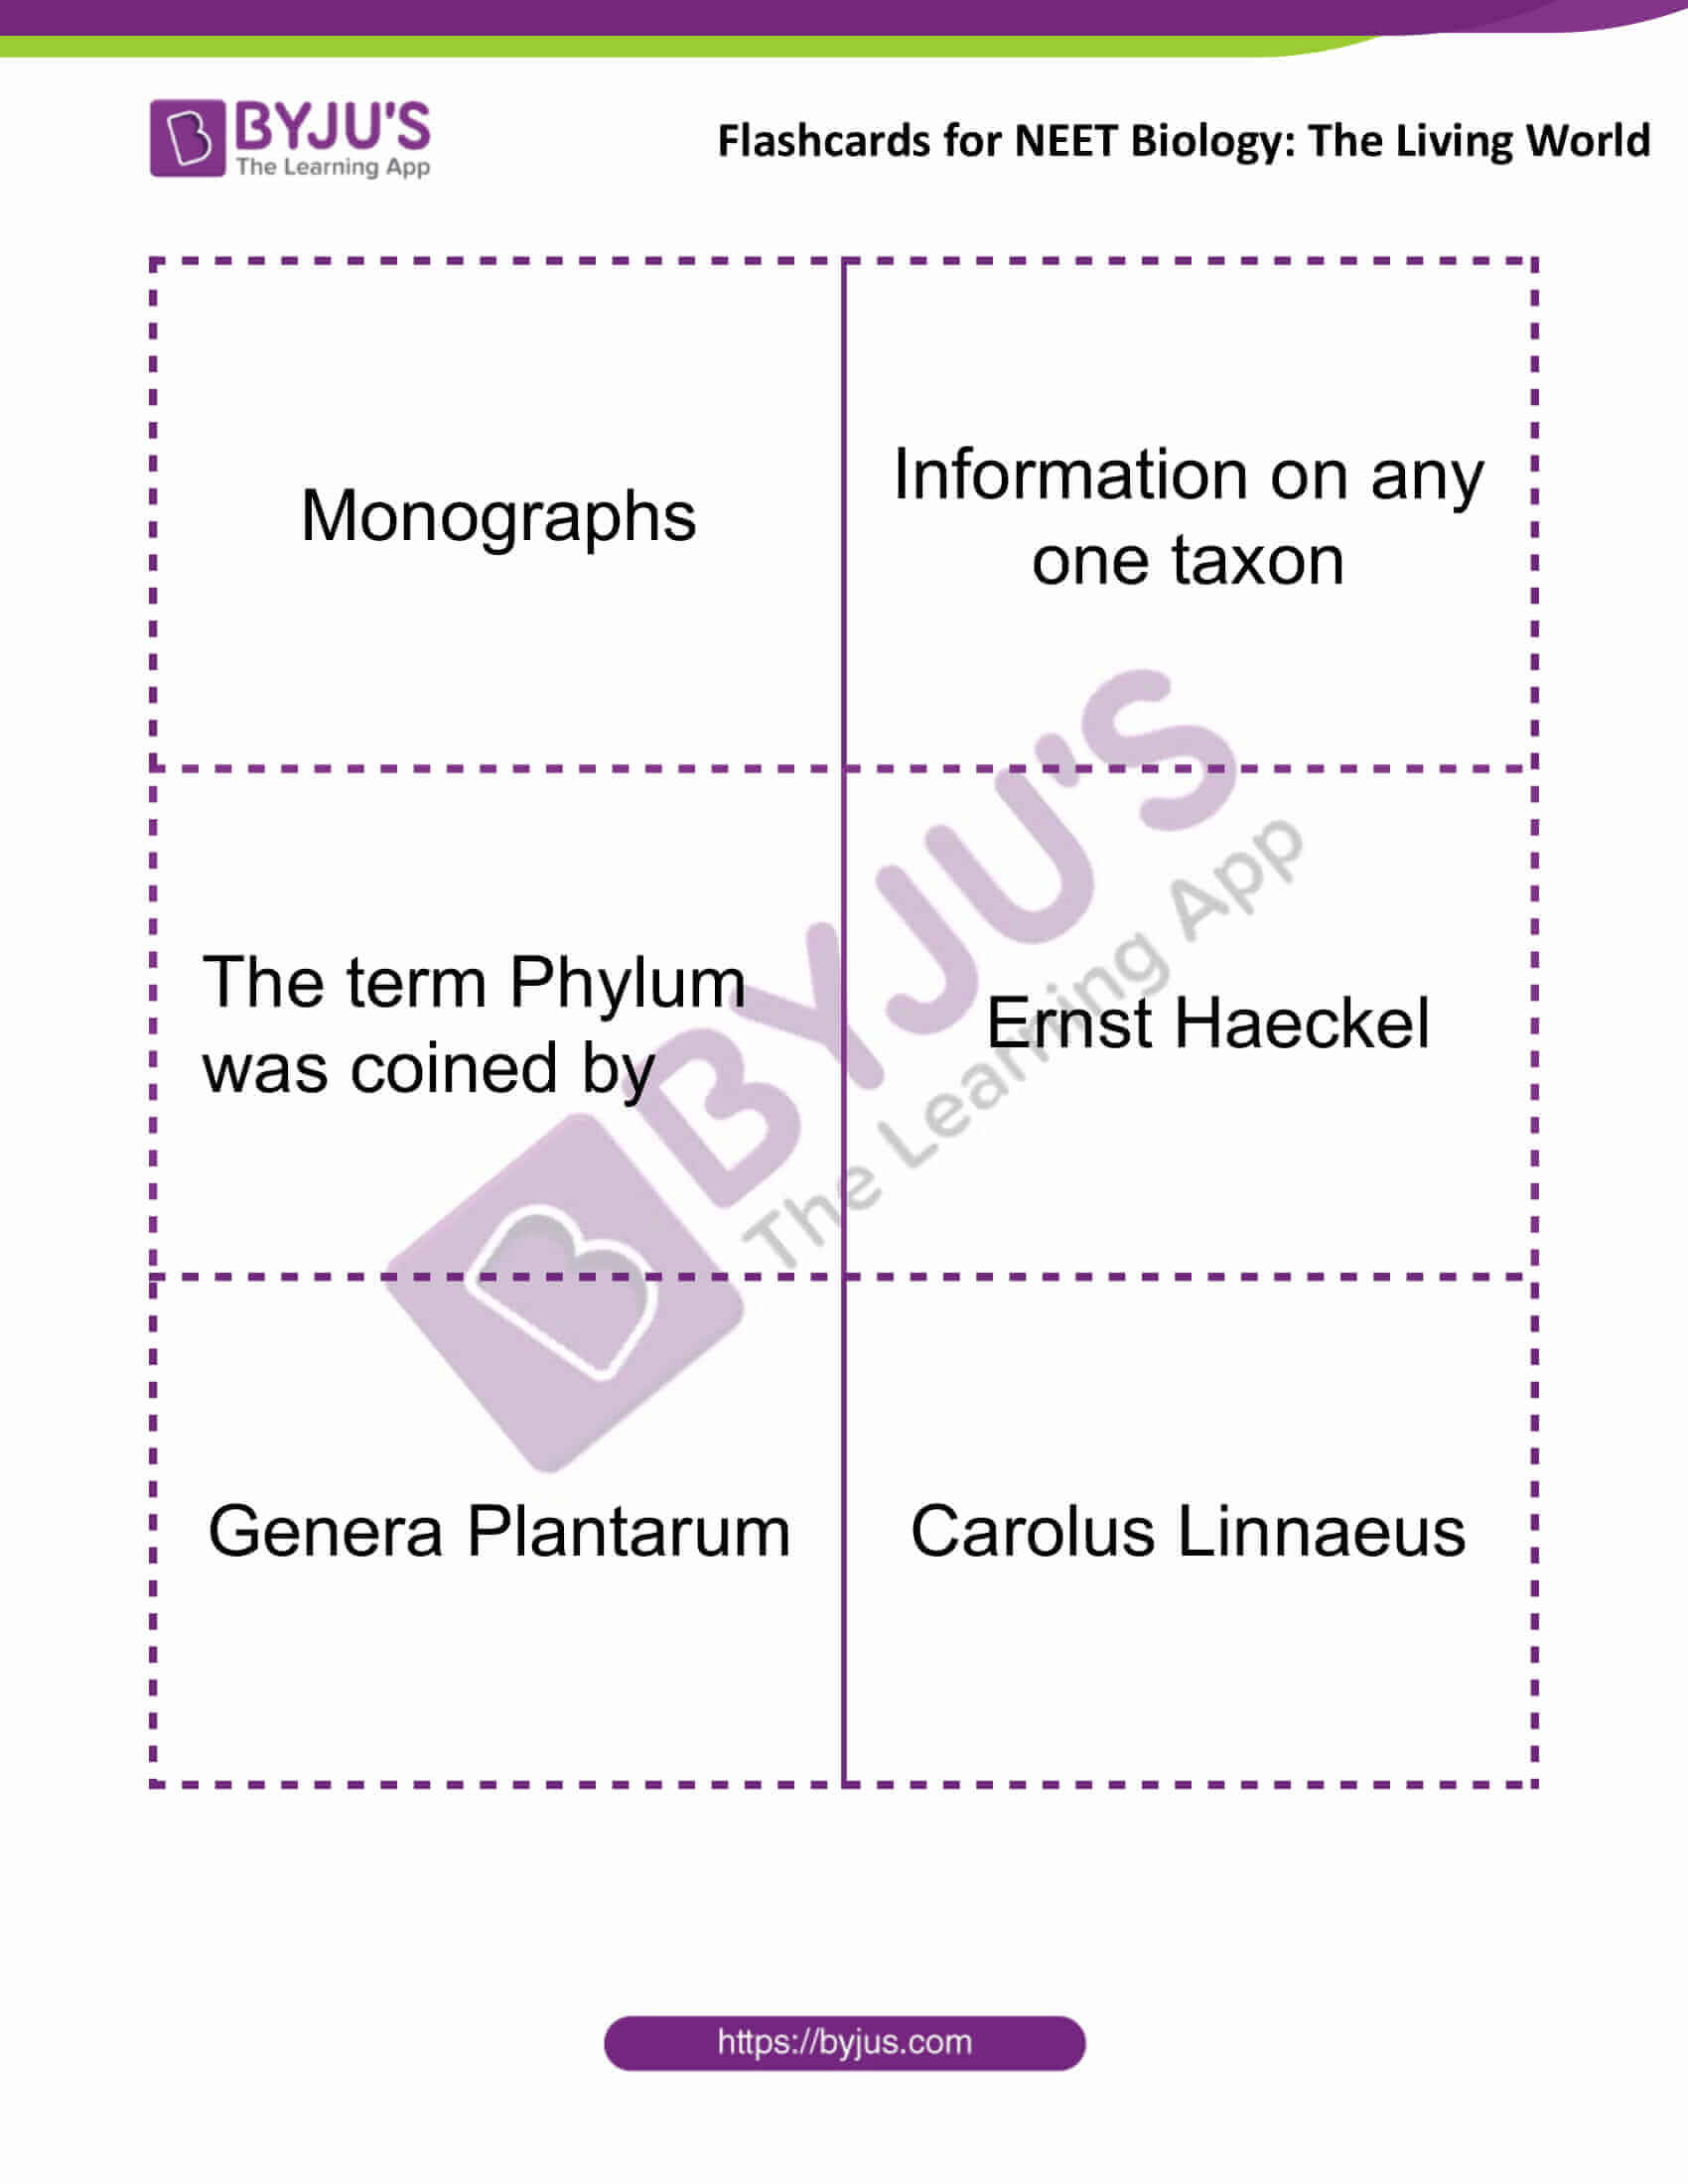 Flashcards for Bio NEET The Living World 4